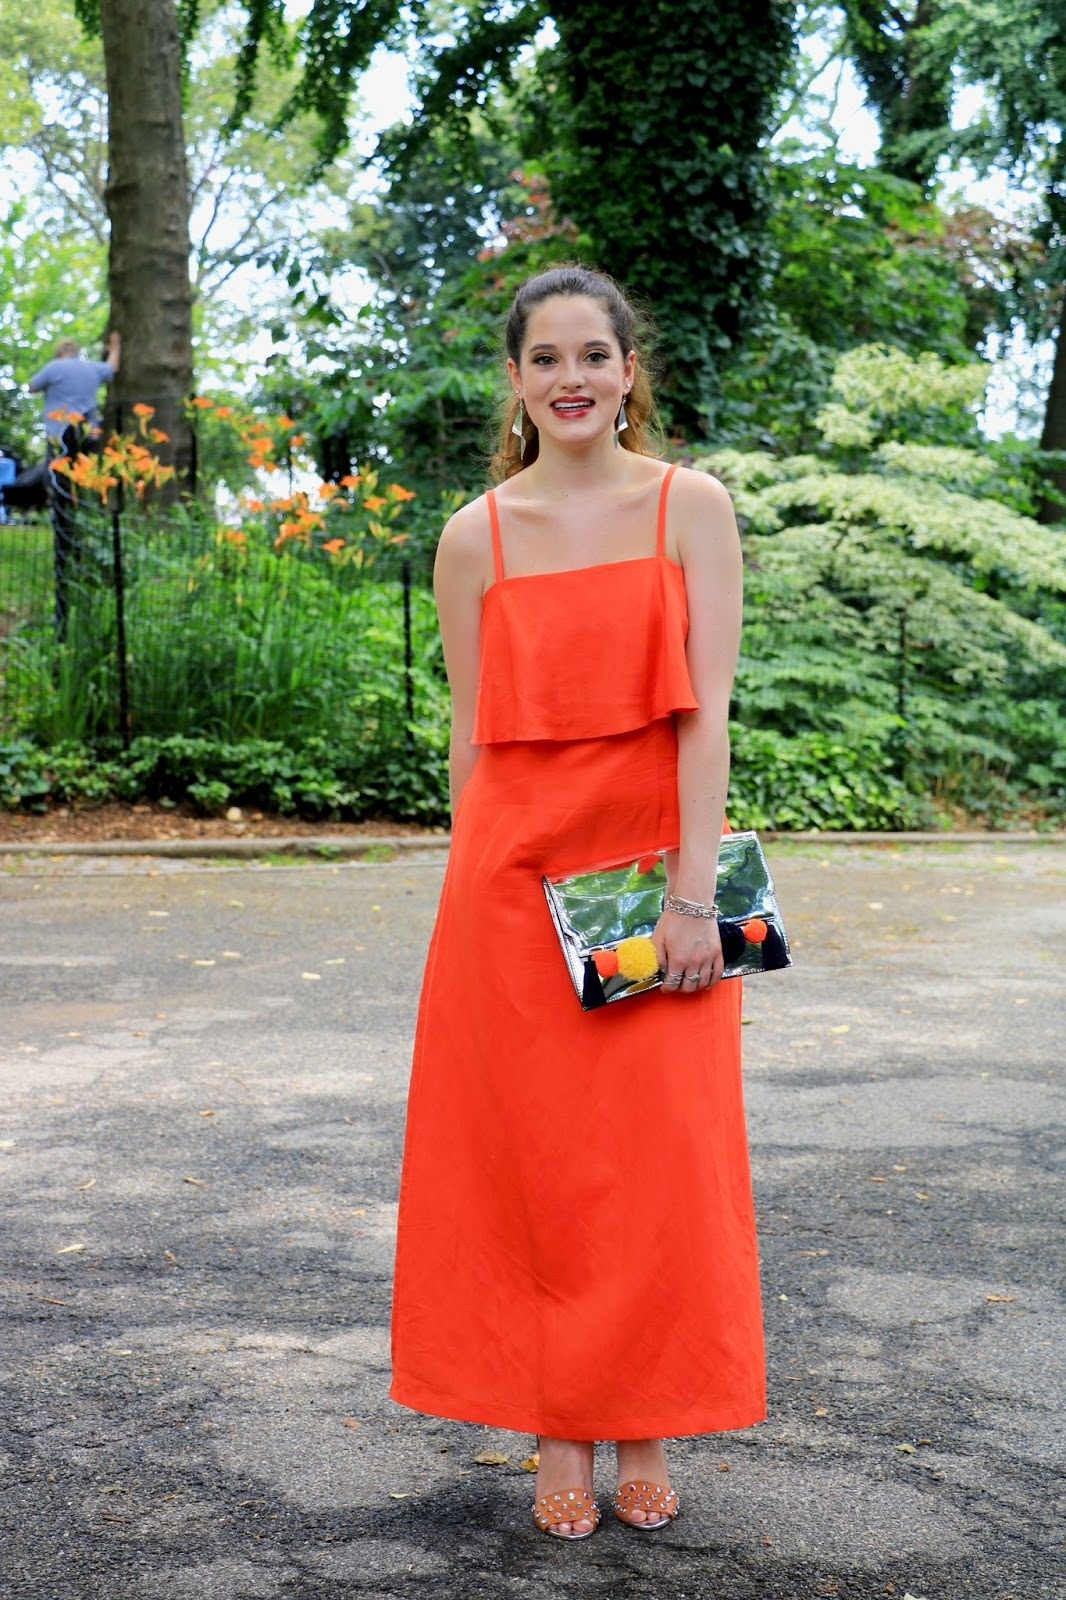 Fashion blogger Kathleen Harper of Kat's Fashion Fix showing summer wedding outfit ideas